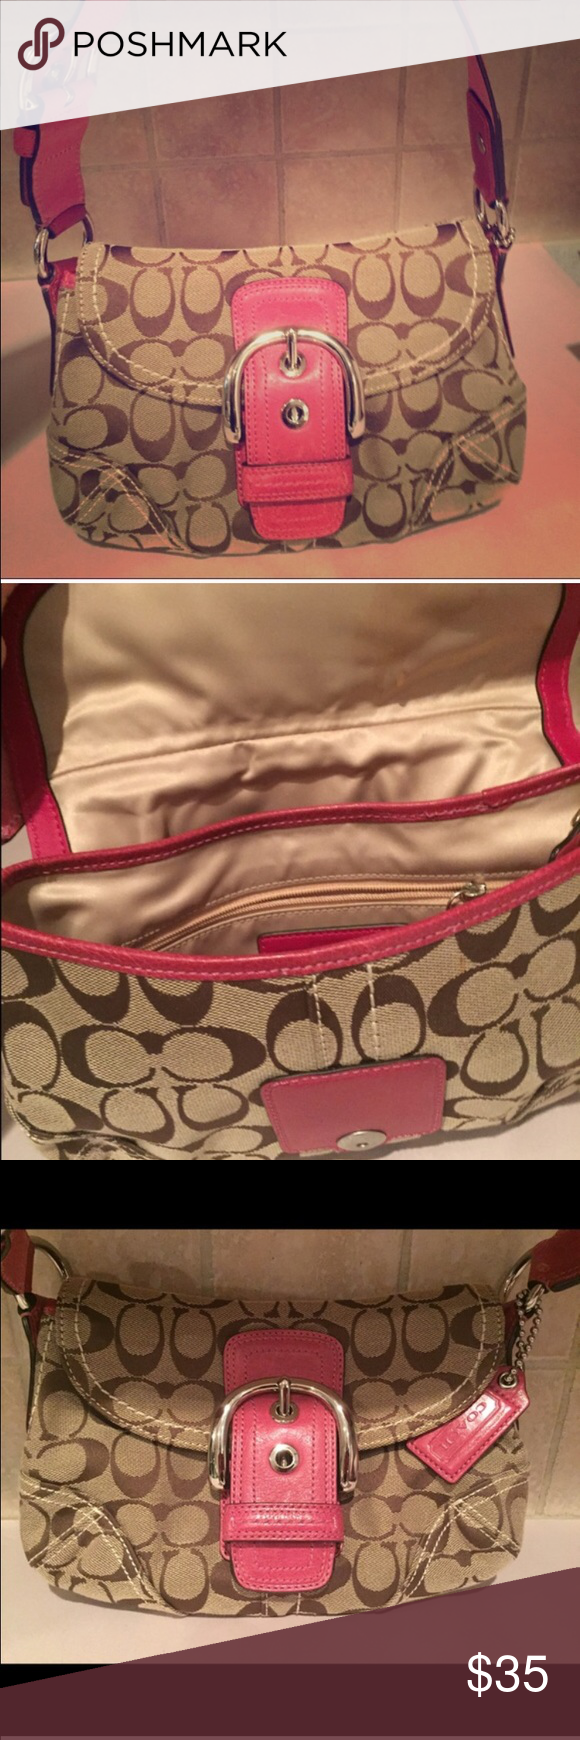 small pink tan coach purse this is a re posh it was not quite